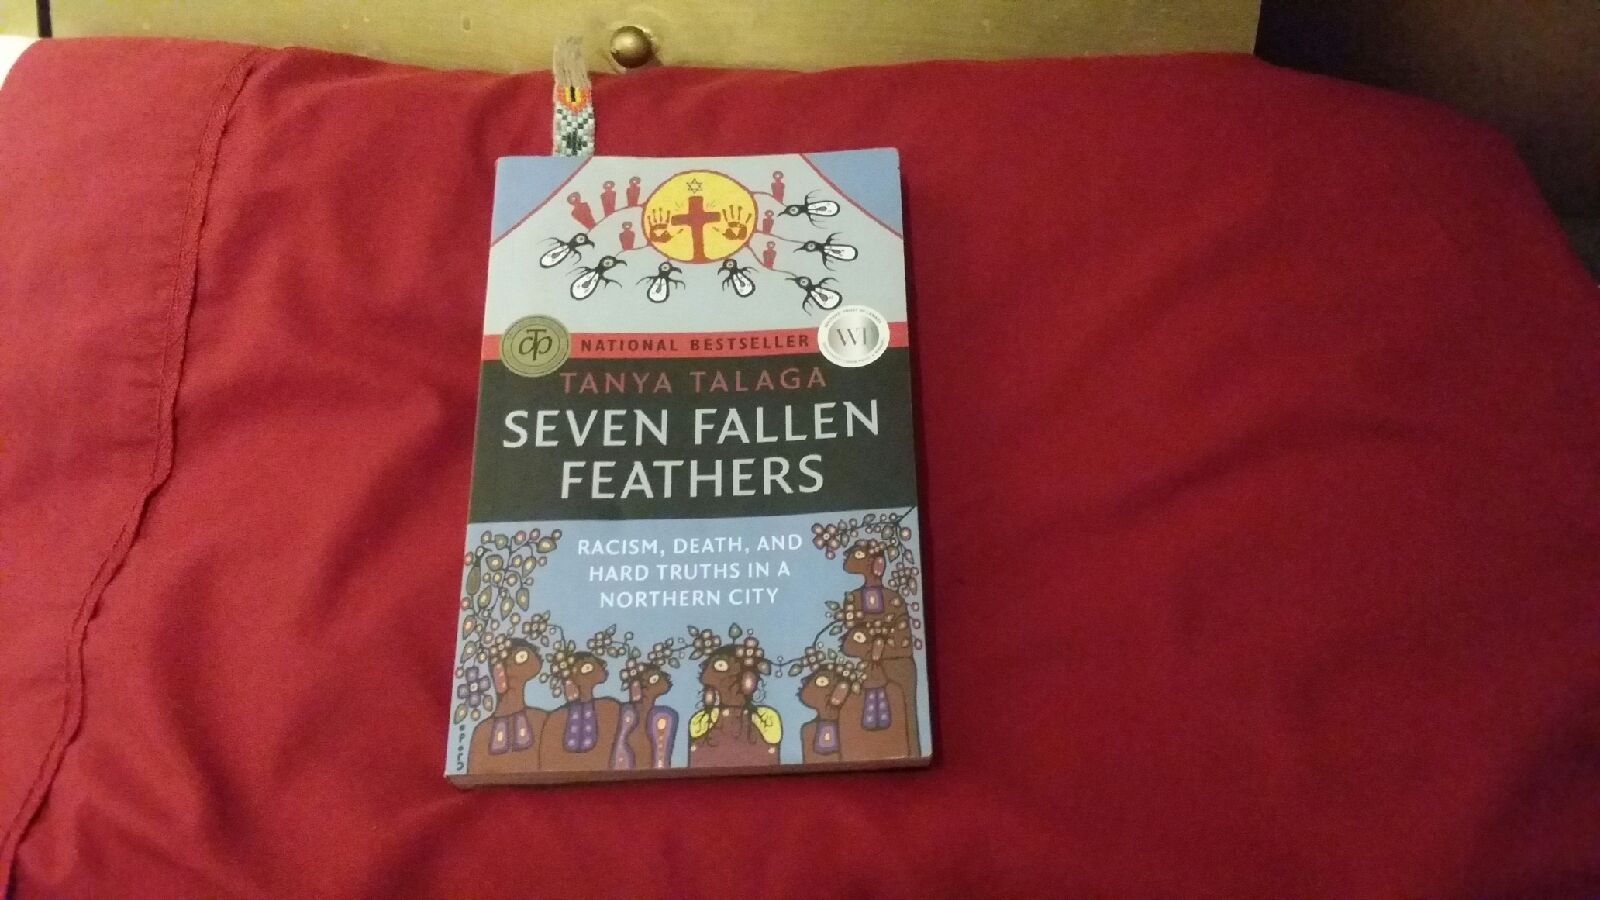 A picture of Seven Fallen Feathers, a book I need to complete for one of my classes. Caption: Maybe I wouldn't have fallen asleep if I didn't read in bed?